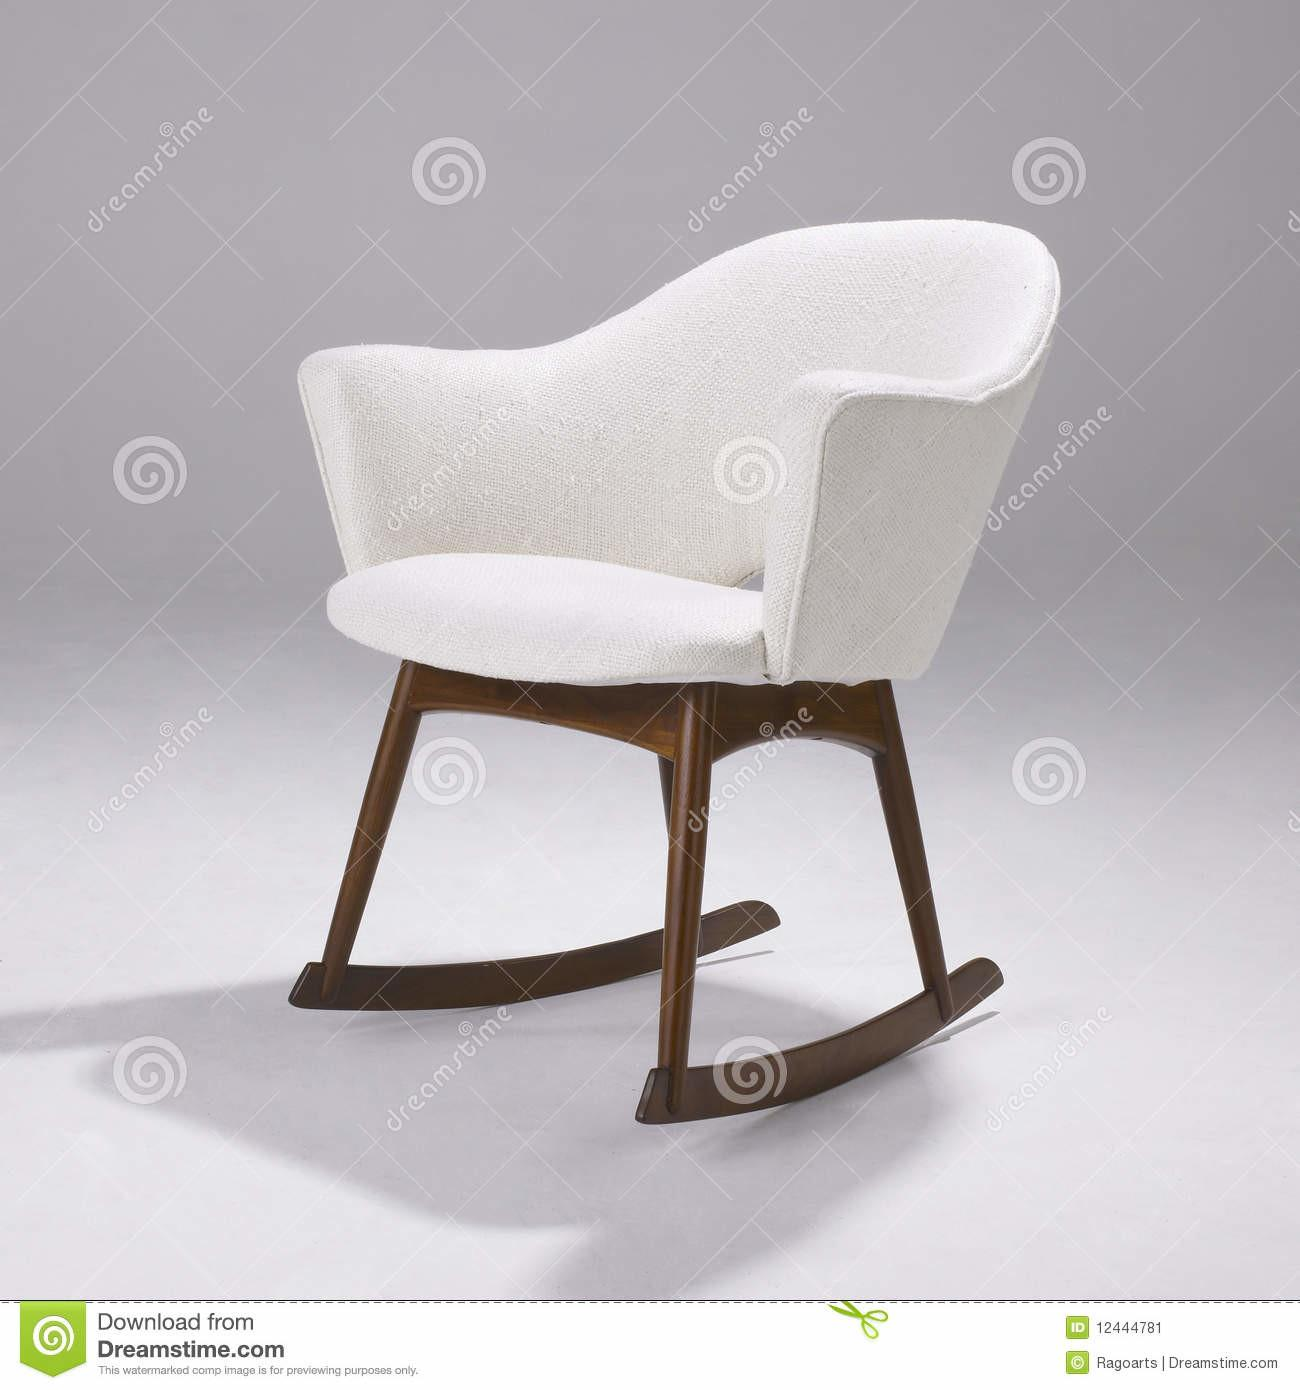 Iconic Modern Design Rocking Chair Editorial